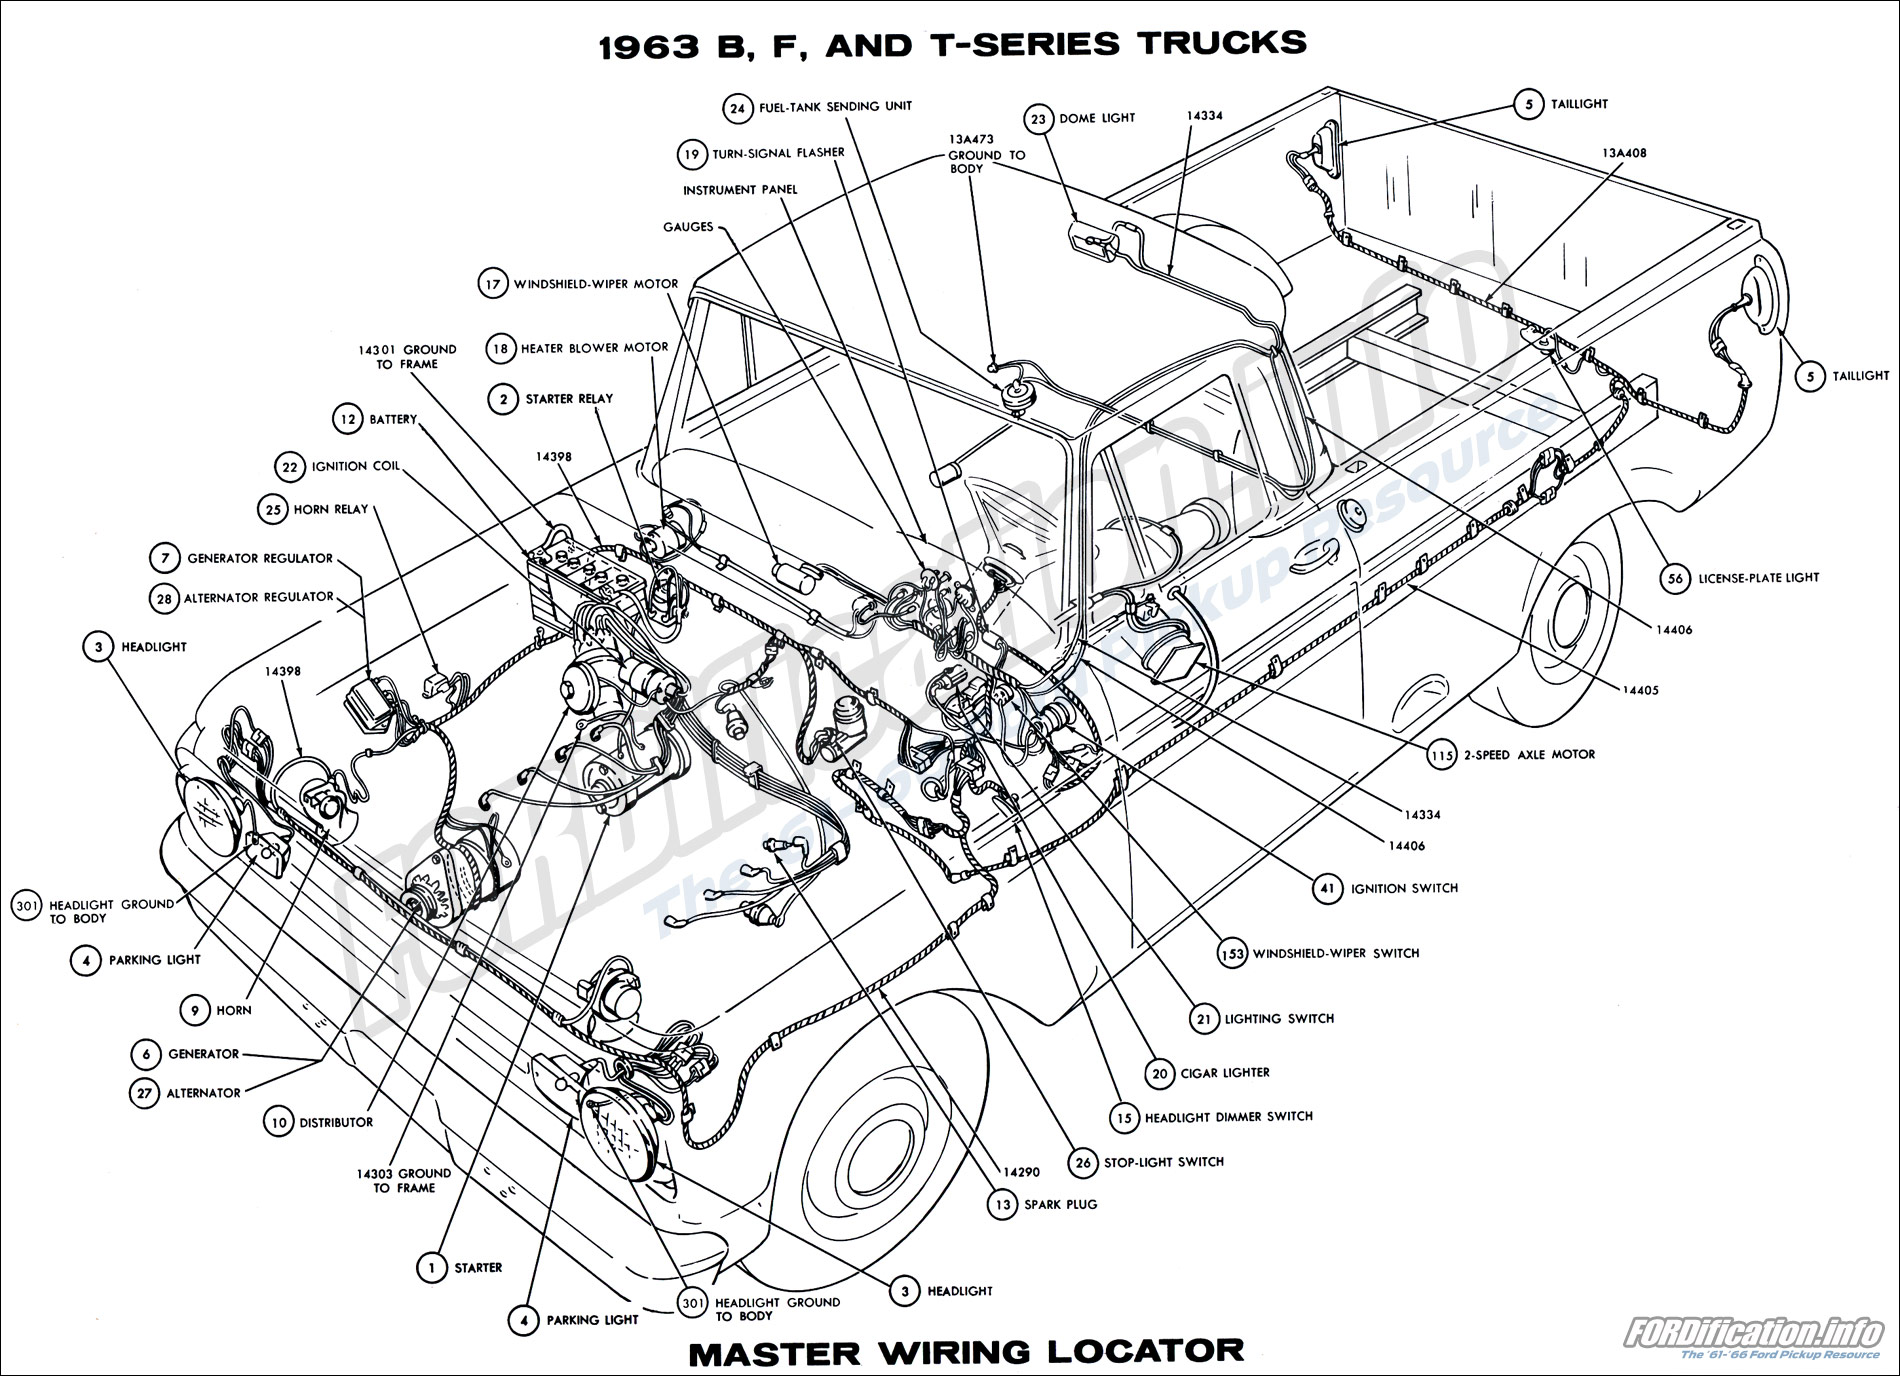 63masterlocator 1963 ford truck wiring diagrams fordification info the '61 '66 1968 ford wiring diagrams at arjmand.co